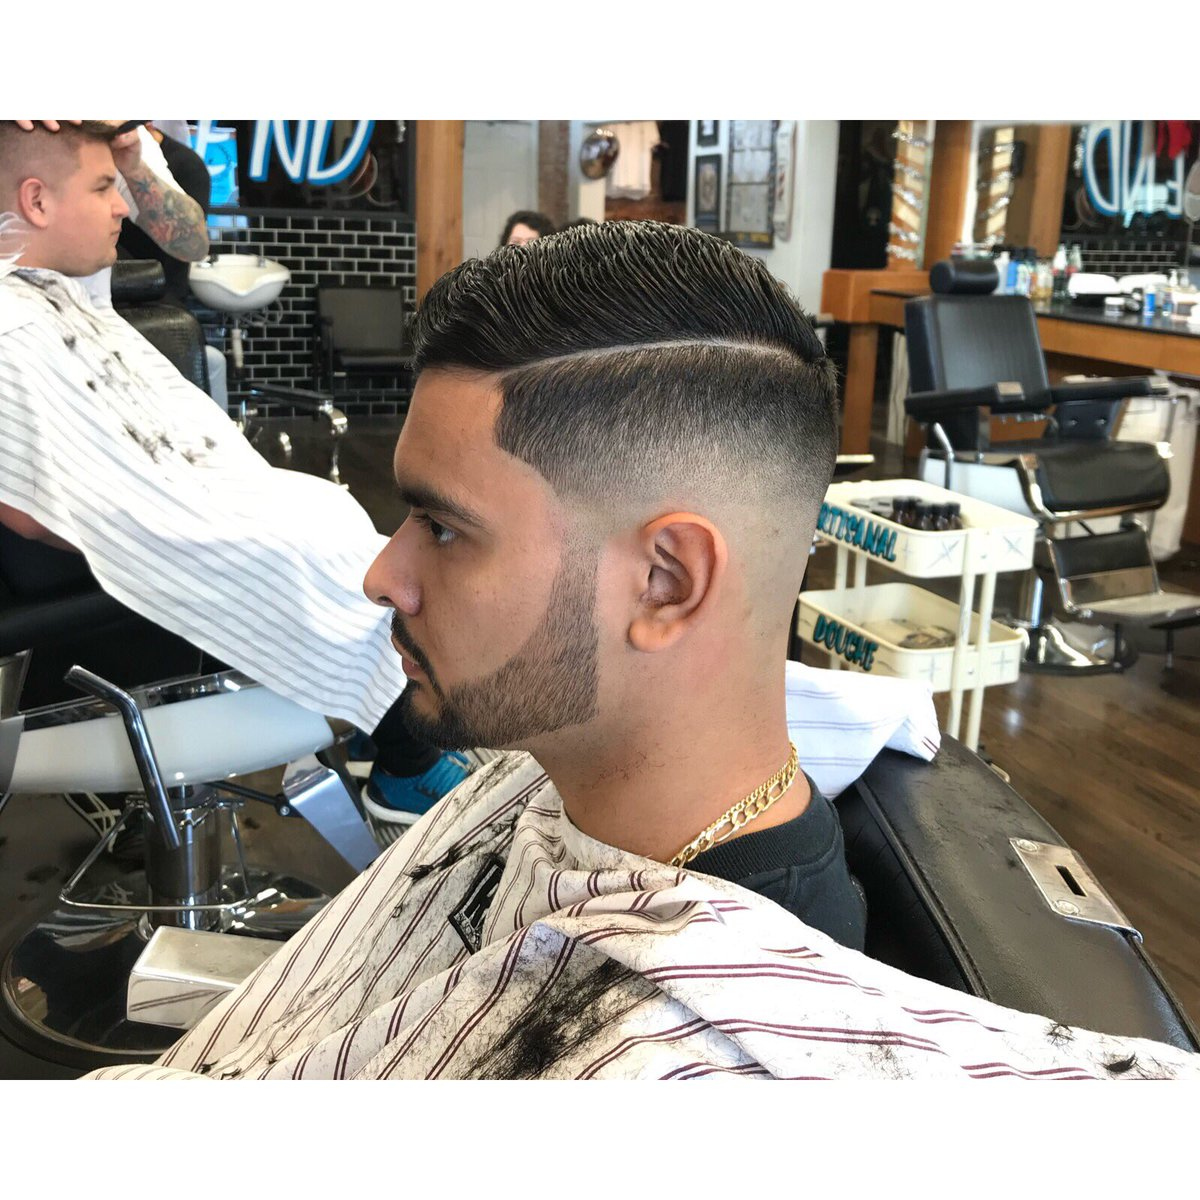 ❄️❄️❄️❄️ work by @miketeecuts     #eastendbarber #houstonbarber  #houstonbarbershop  #eastendbarber #everybodyhappy  #houstonbarberstylist #texasbarber #houston #htx #necksweat #testedandtrue #vinyl #igvinylclub #recordstore #appointmentonly #houstonrockets #houstonastros #hou